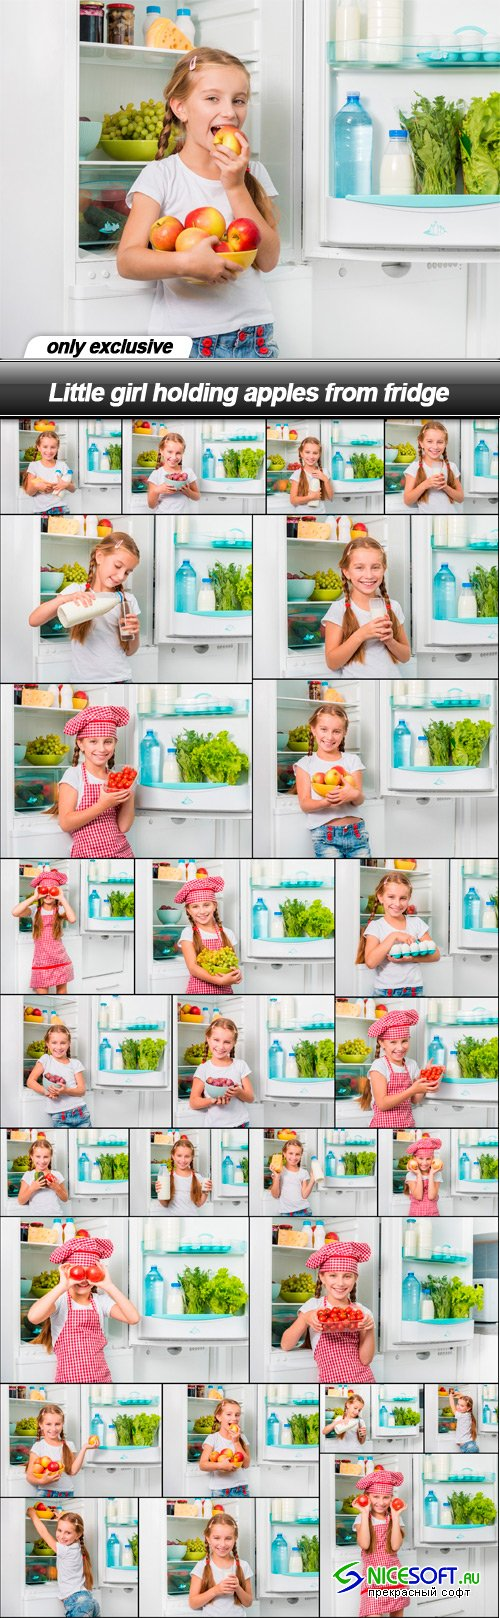 Little girl holding apples from fridge